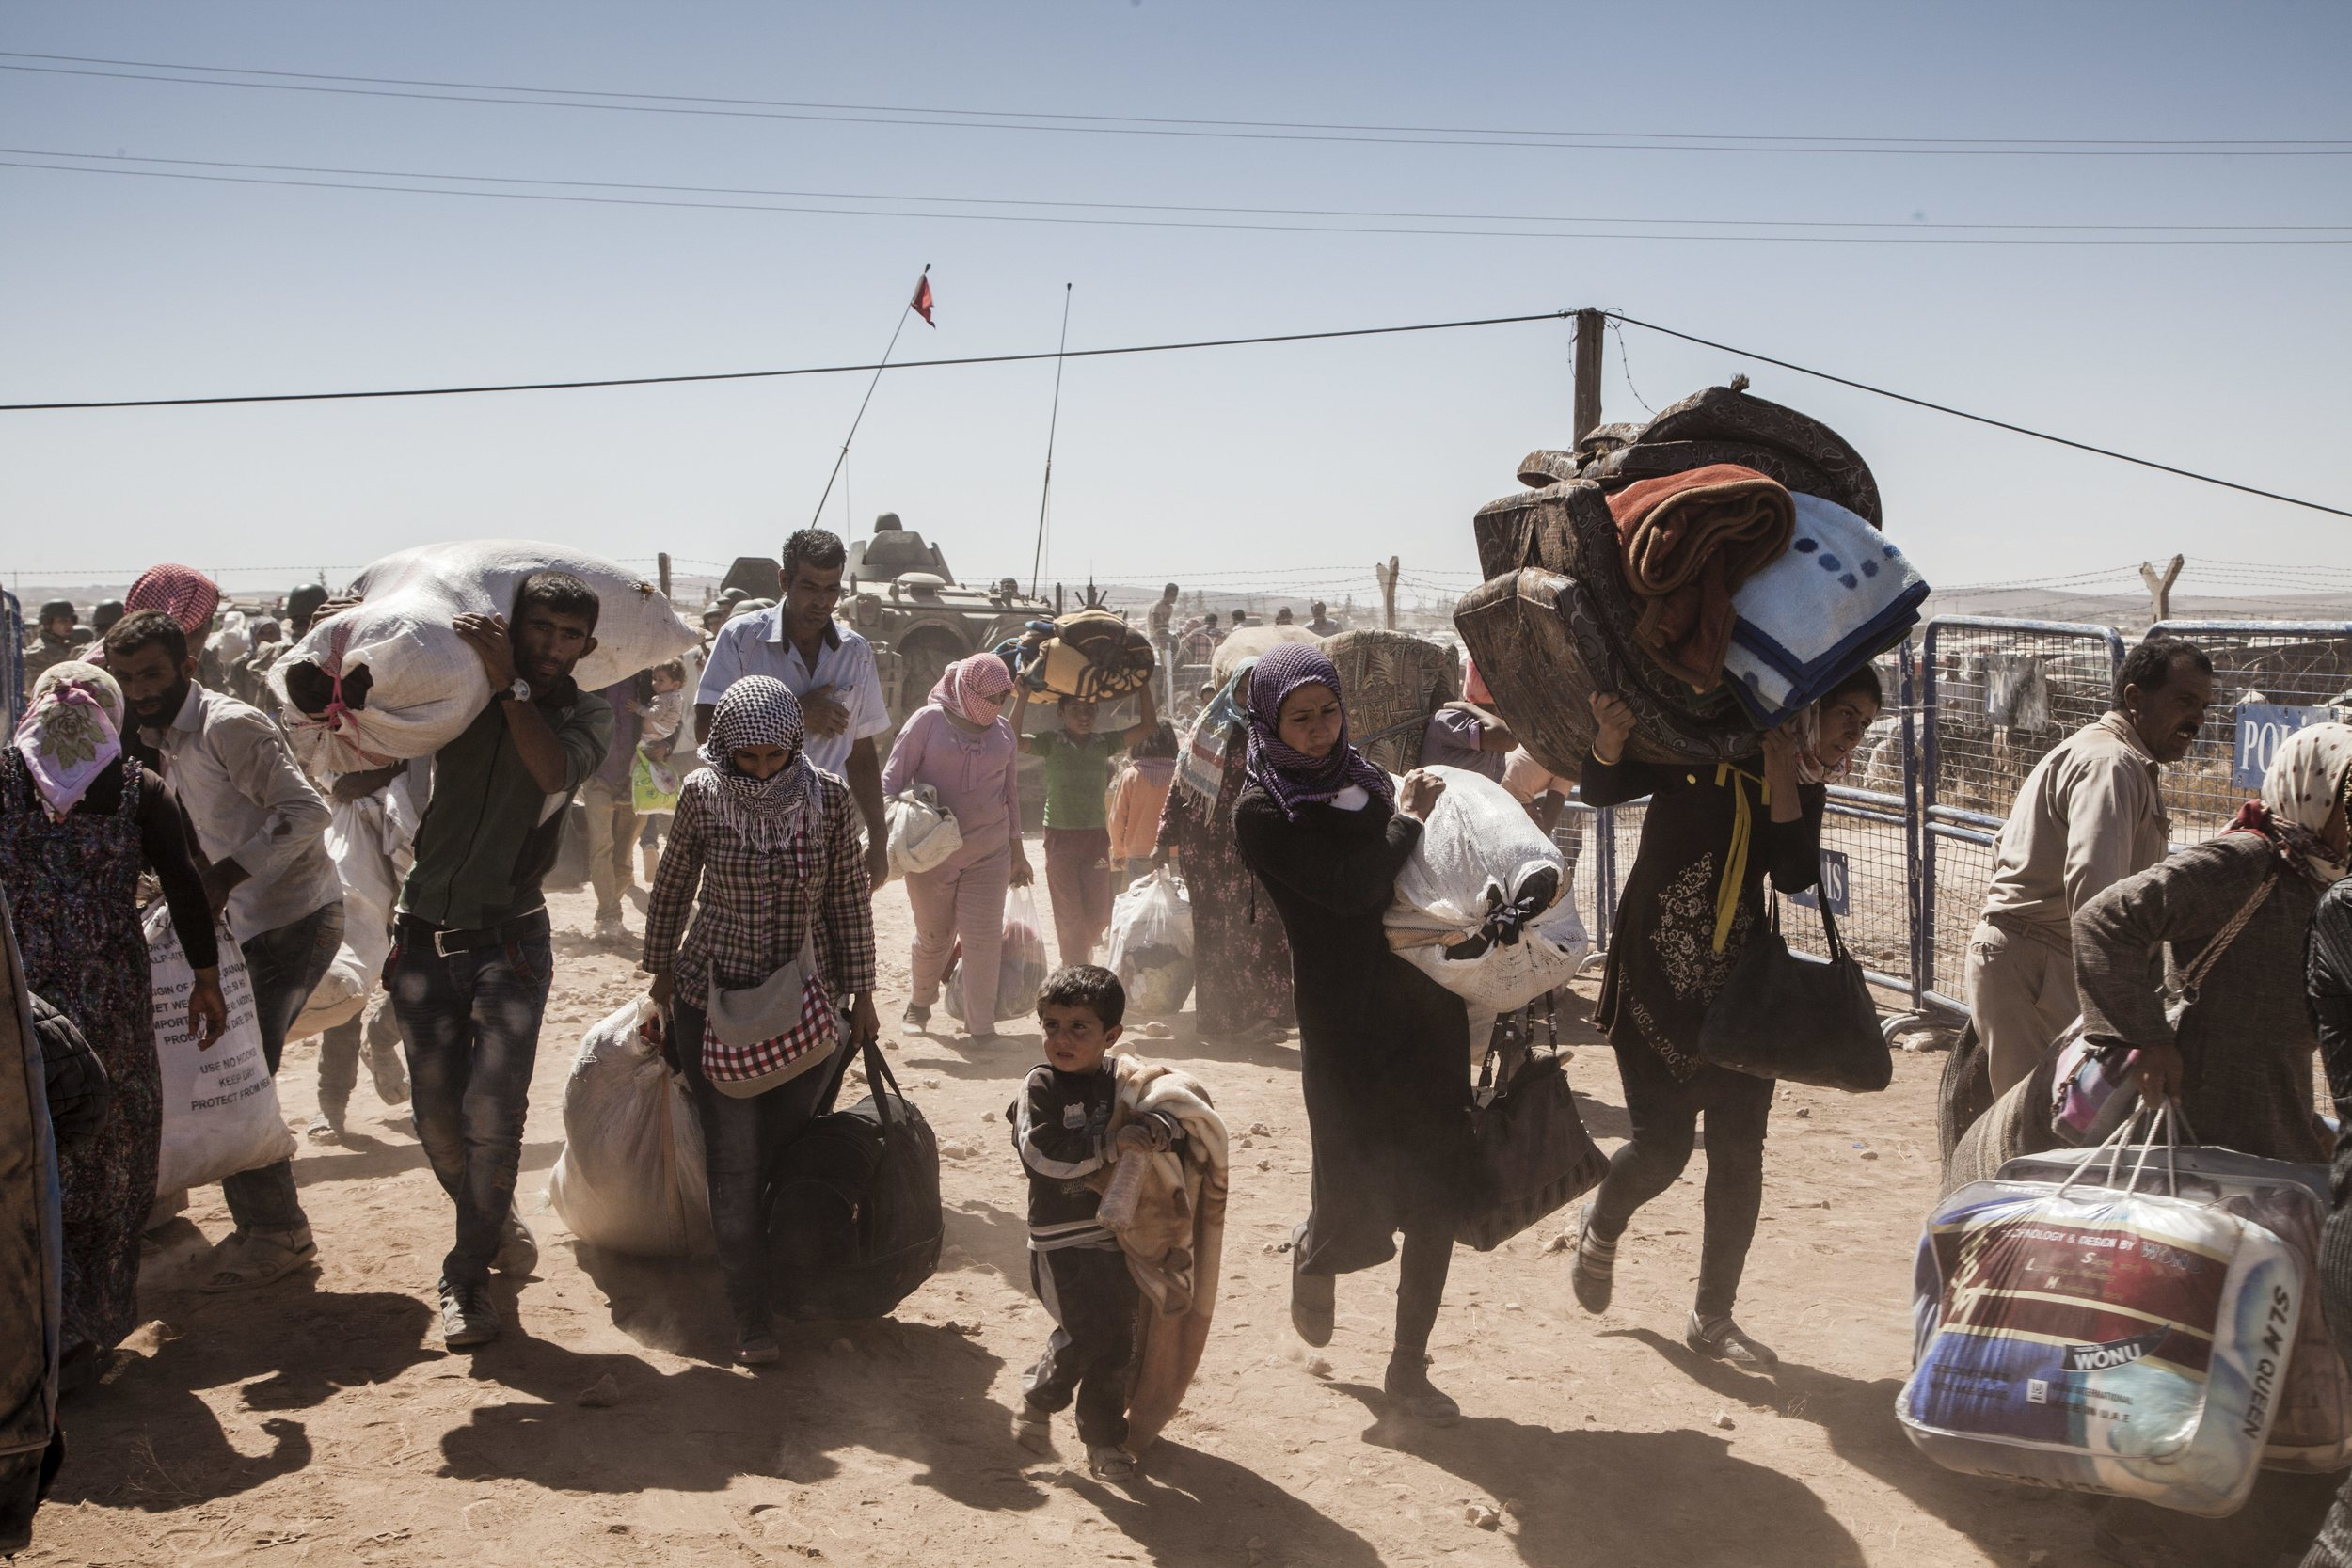 Syrian Kurdish refugees cross into Turkey from Syria, near the town of Kobani. Syria's conflict, which began in 2011, has turned the country into the world's single largest driver of displacement. (I. Prickett/ UNHCR)